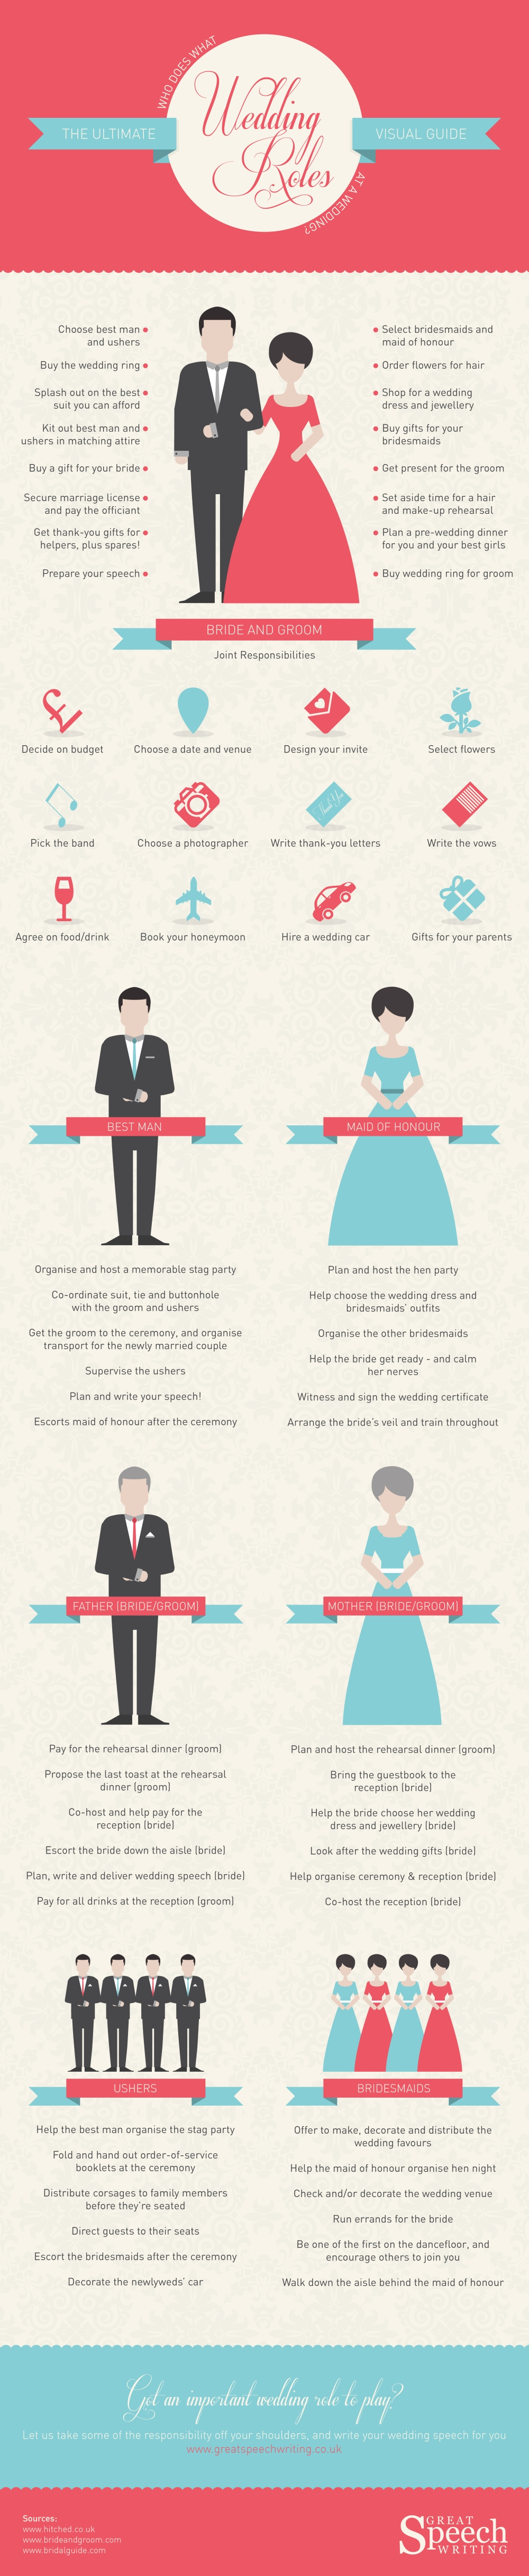 wedding roles explained - who does what at a wedding. surrey luxury wedding